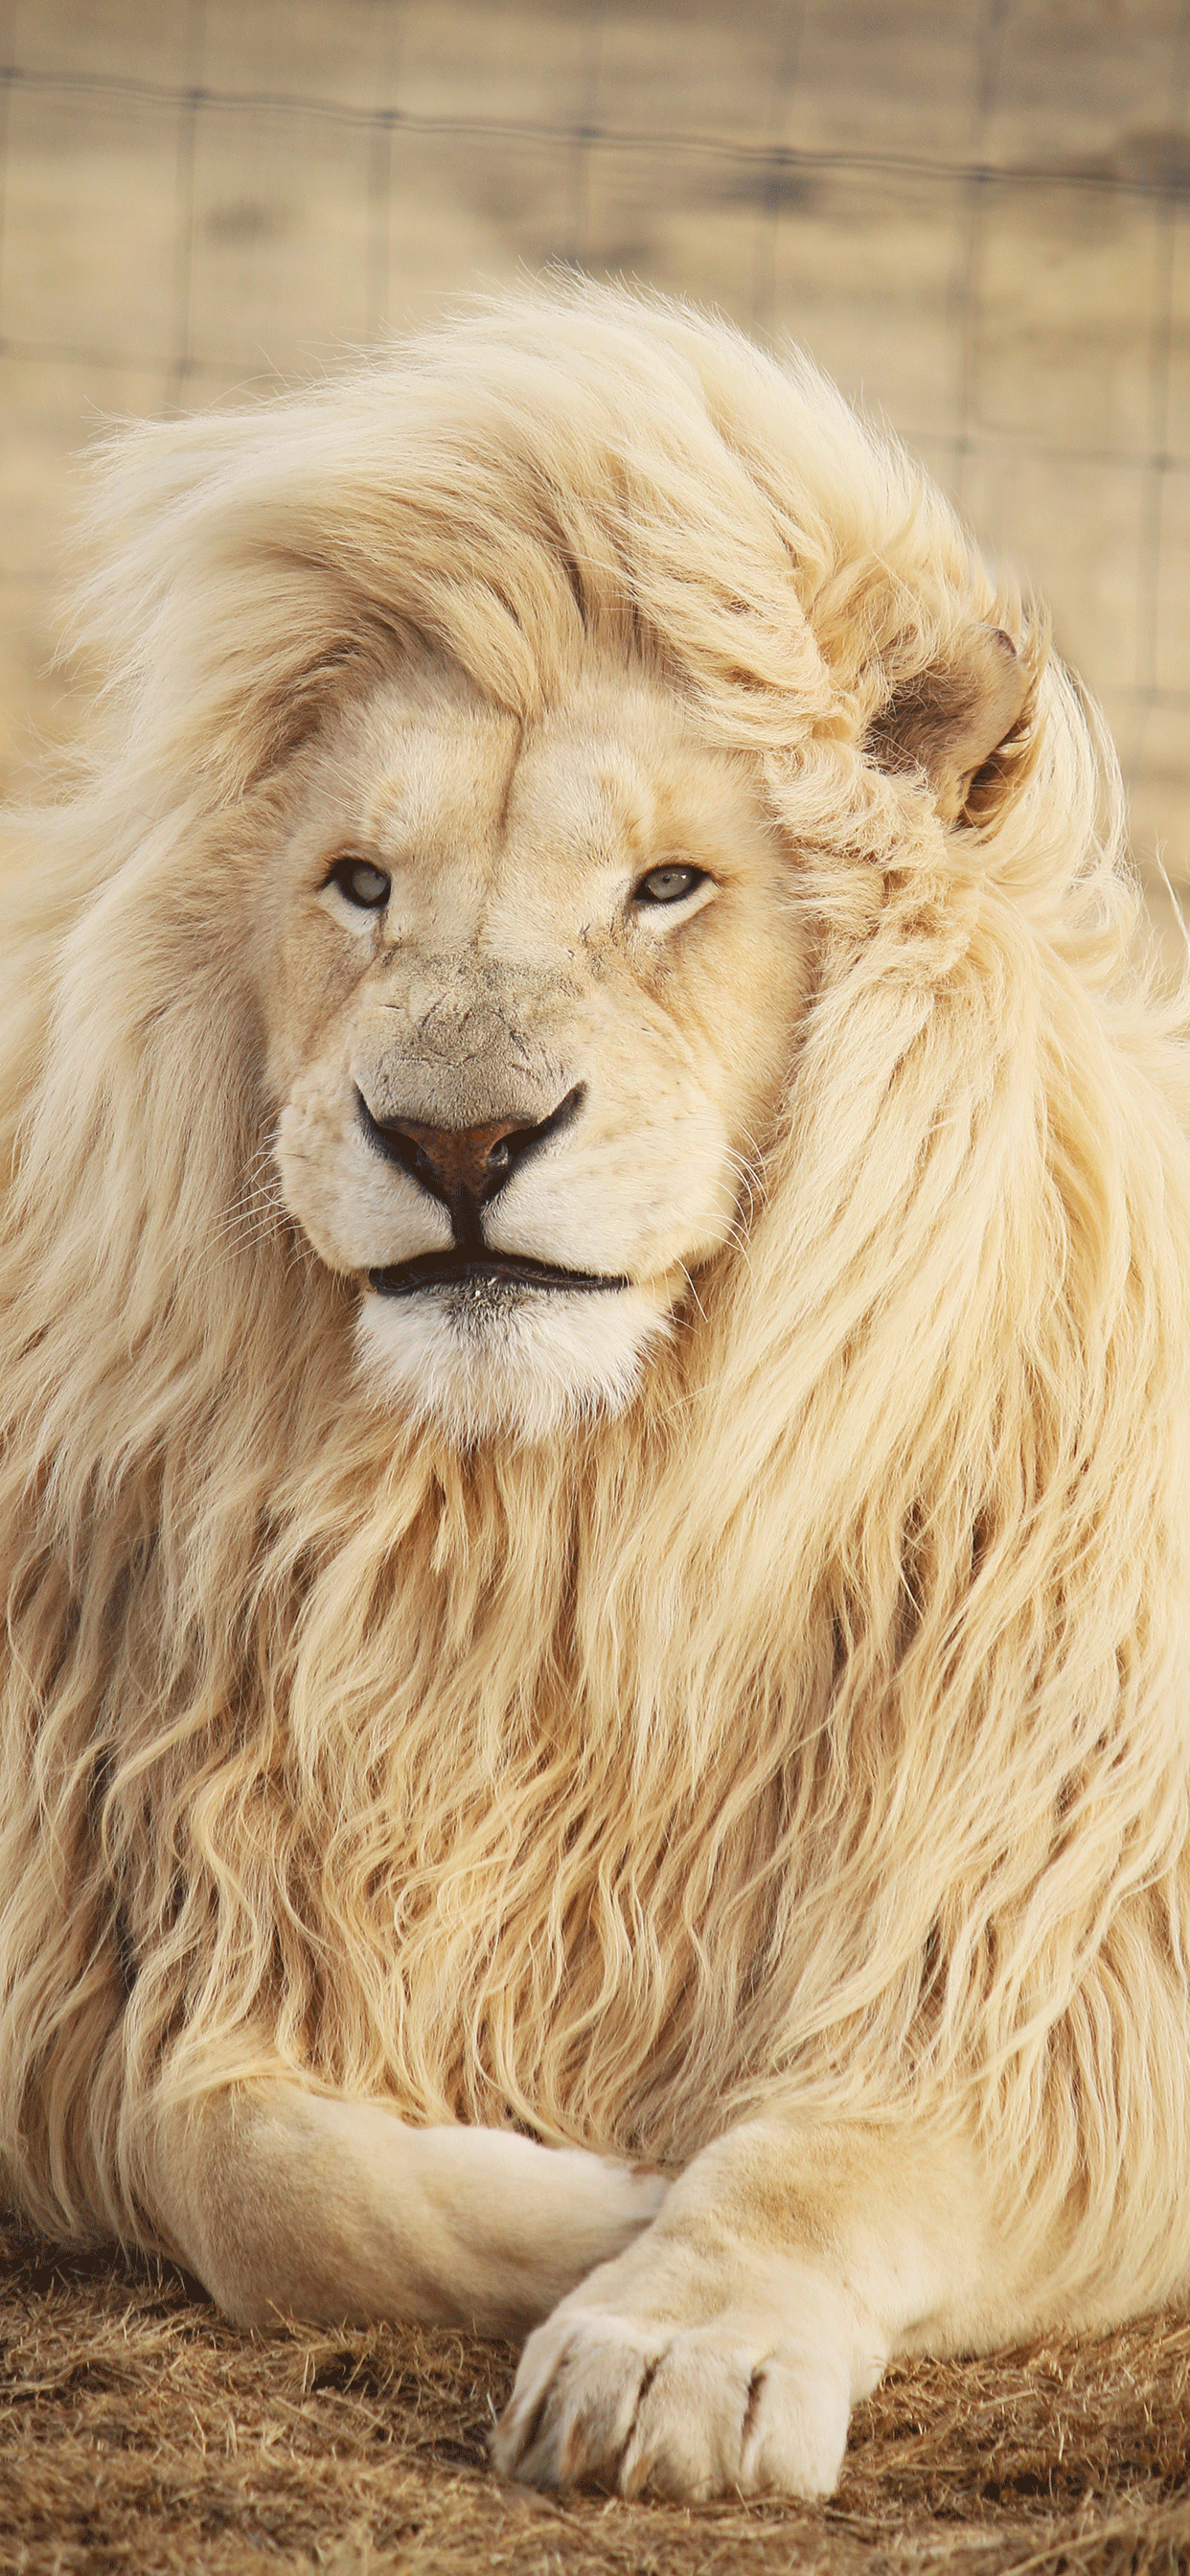 iPhone wallpaper lion south africa Fonds d'écran iPhone du 12/02/2019